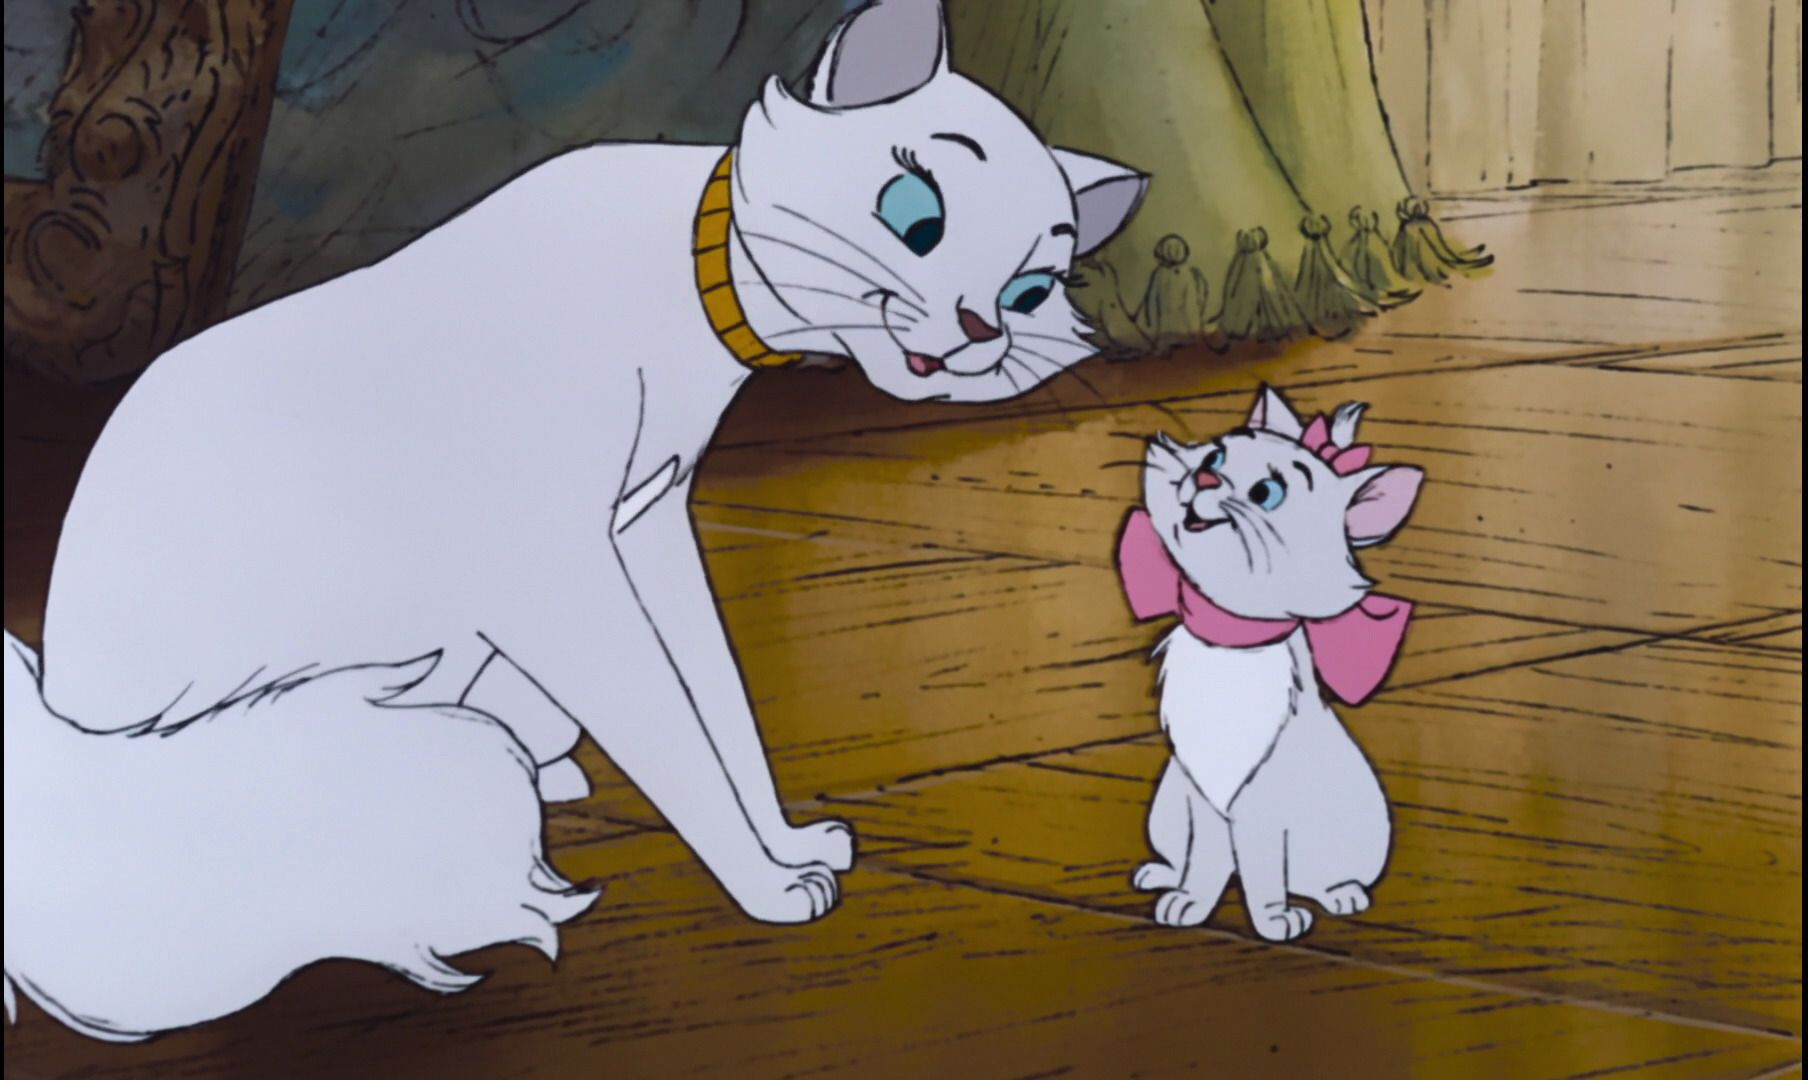 THE ARISTOCATS - LES ARISTOCHATS Disney dieulois